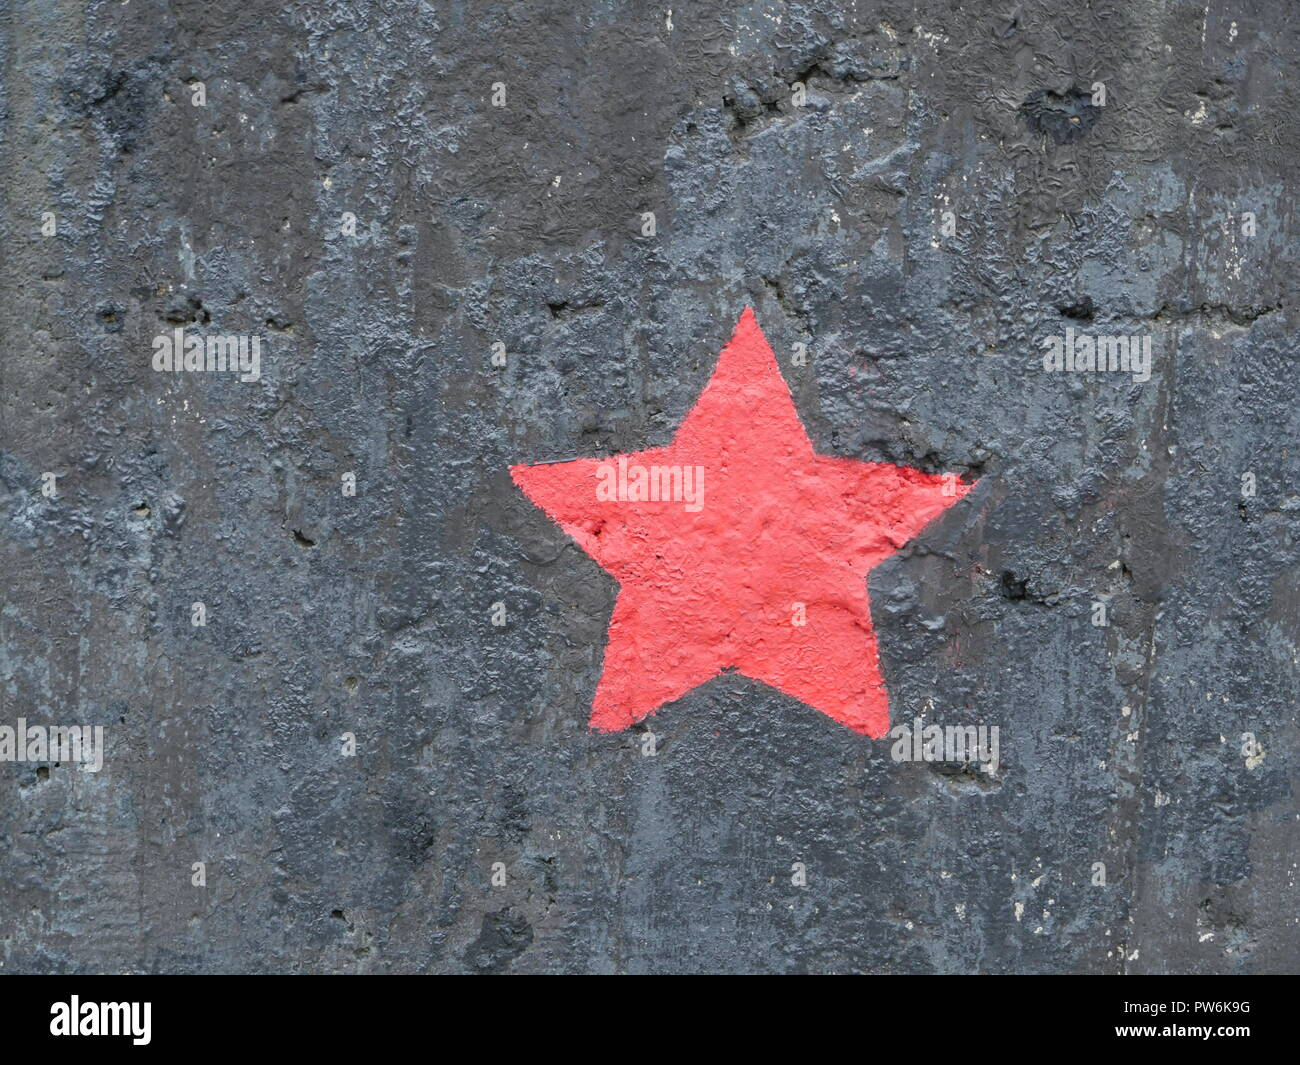 five-pointed red star on a black background - Stock Image